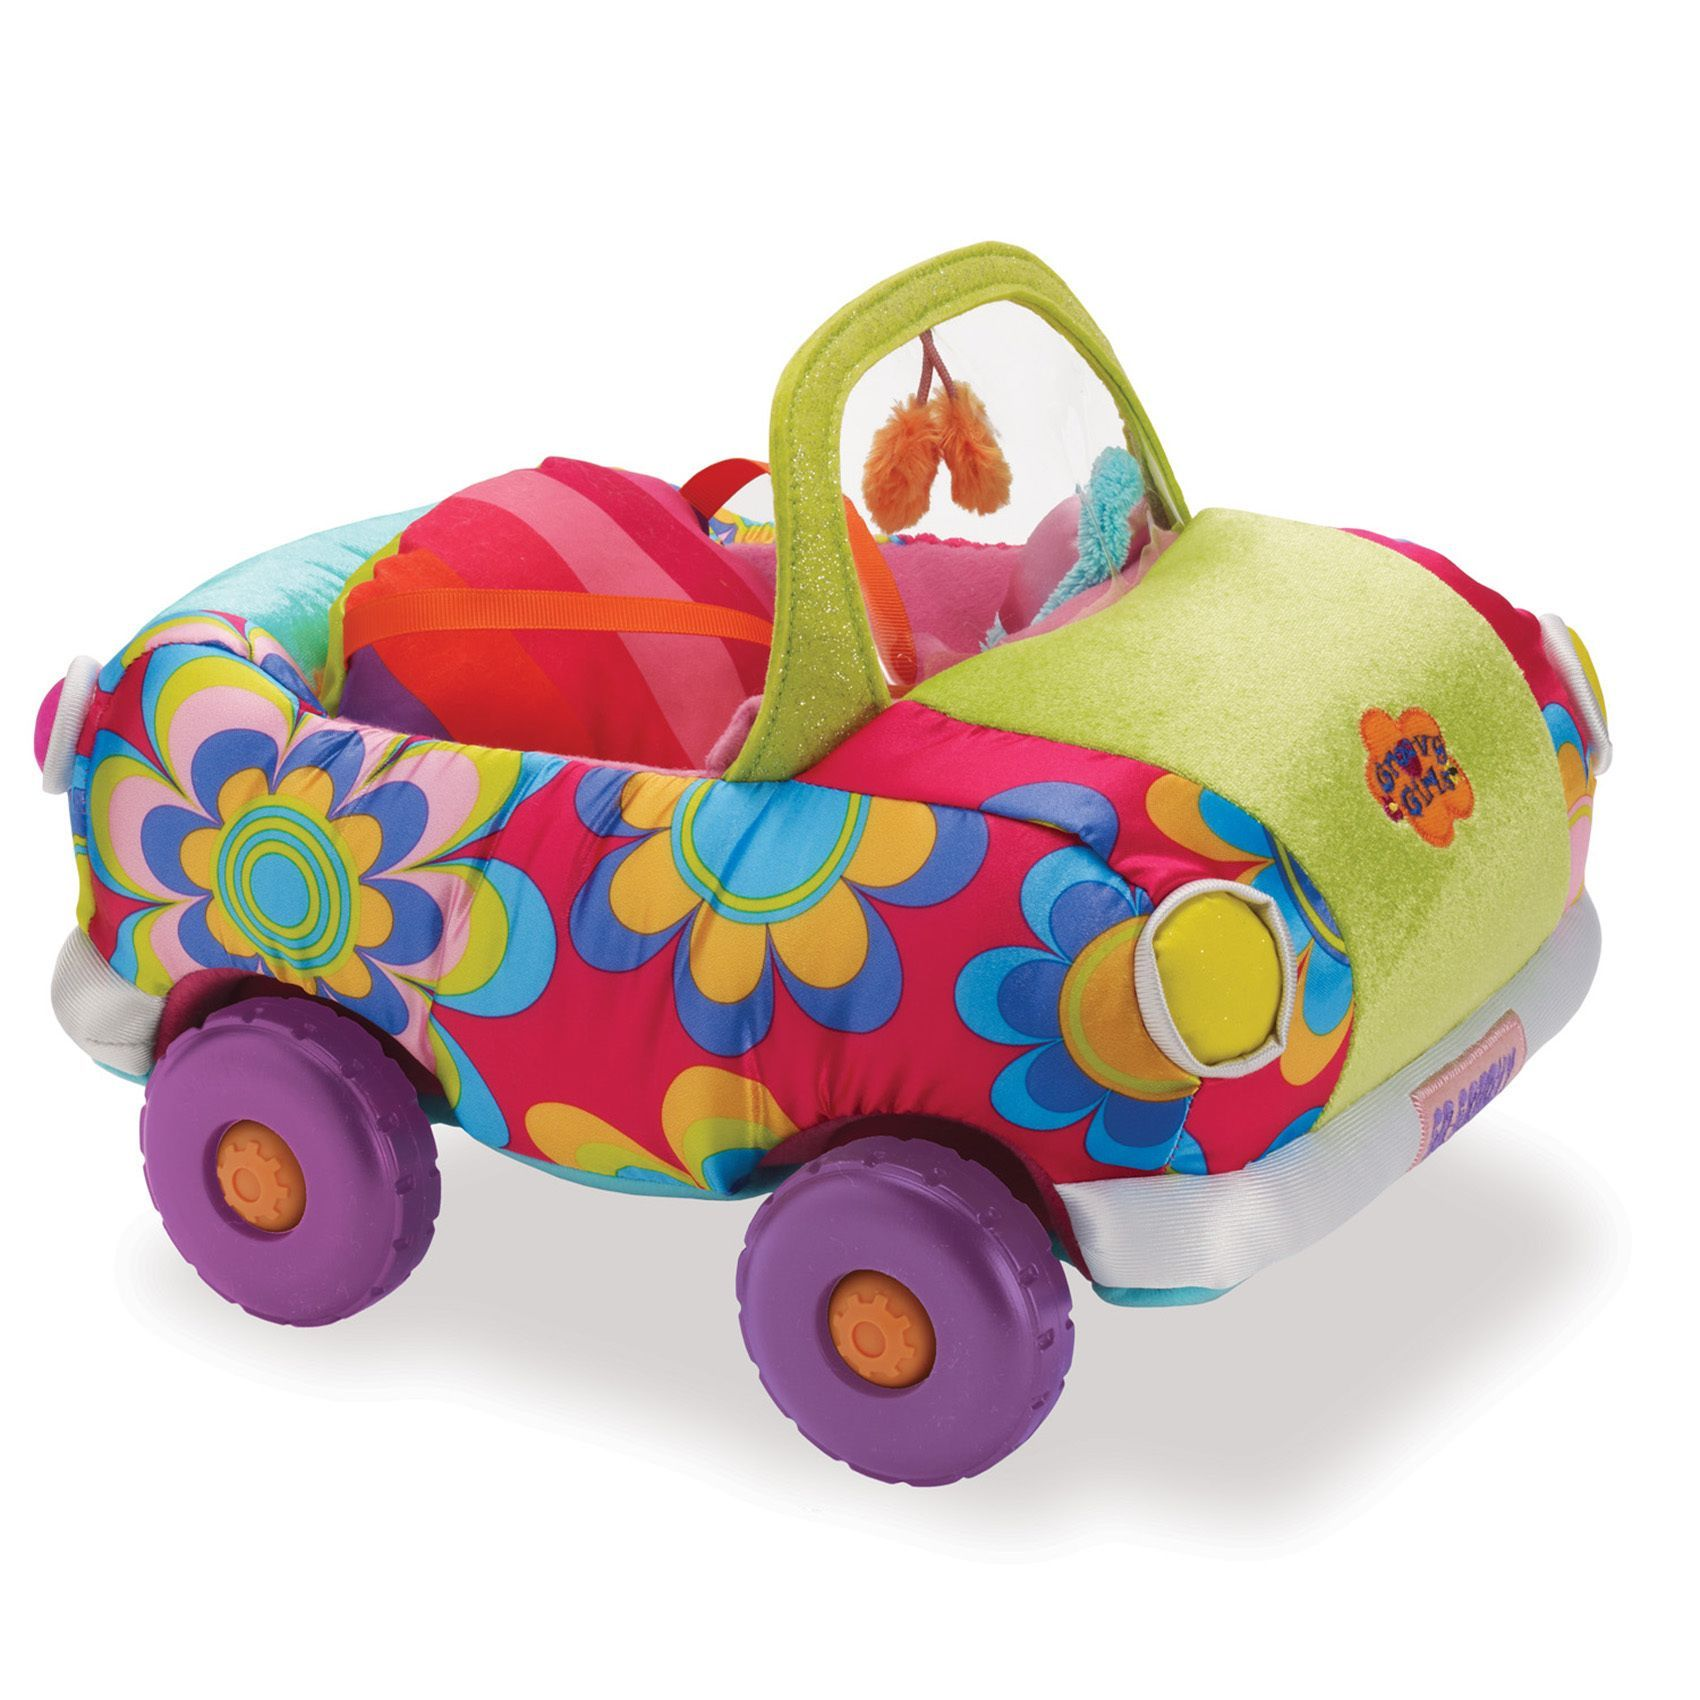 Toys car for baby  Manhattan Toy Groovy Girls Wheelinu In Style color Fabric Plush Toy